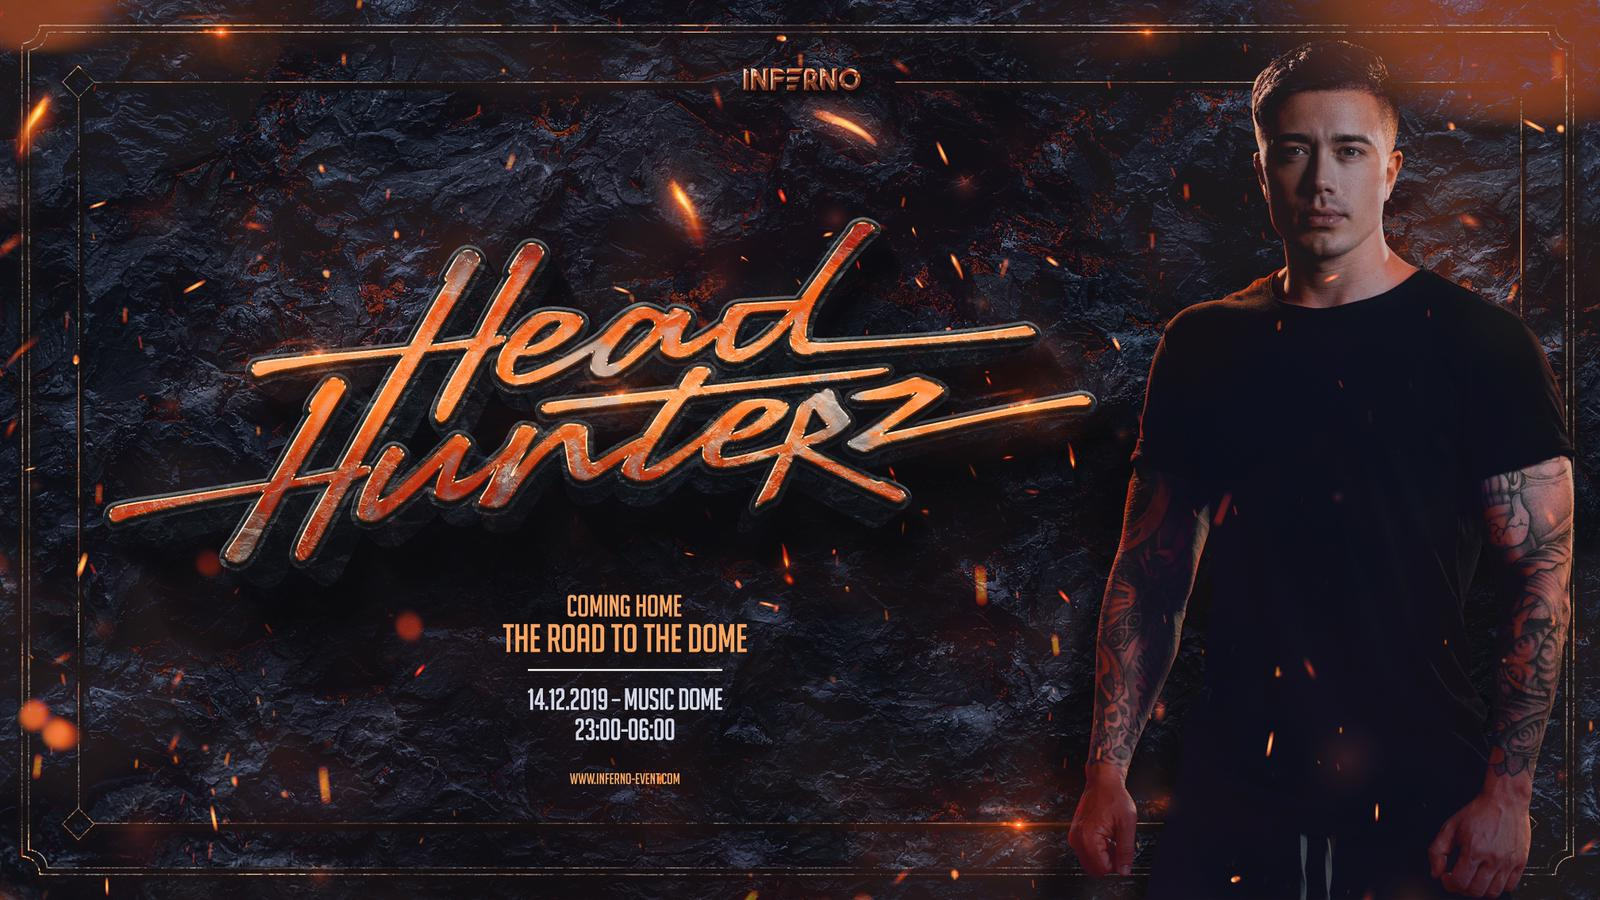 Headhunterz Coming Home event The Road To the dome